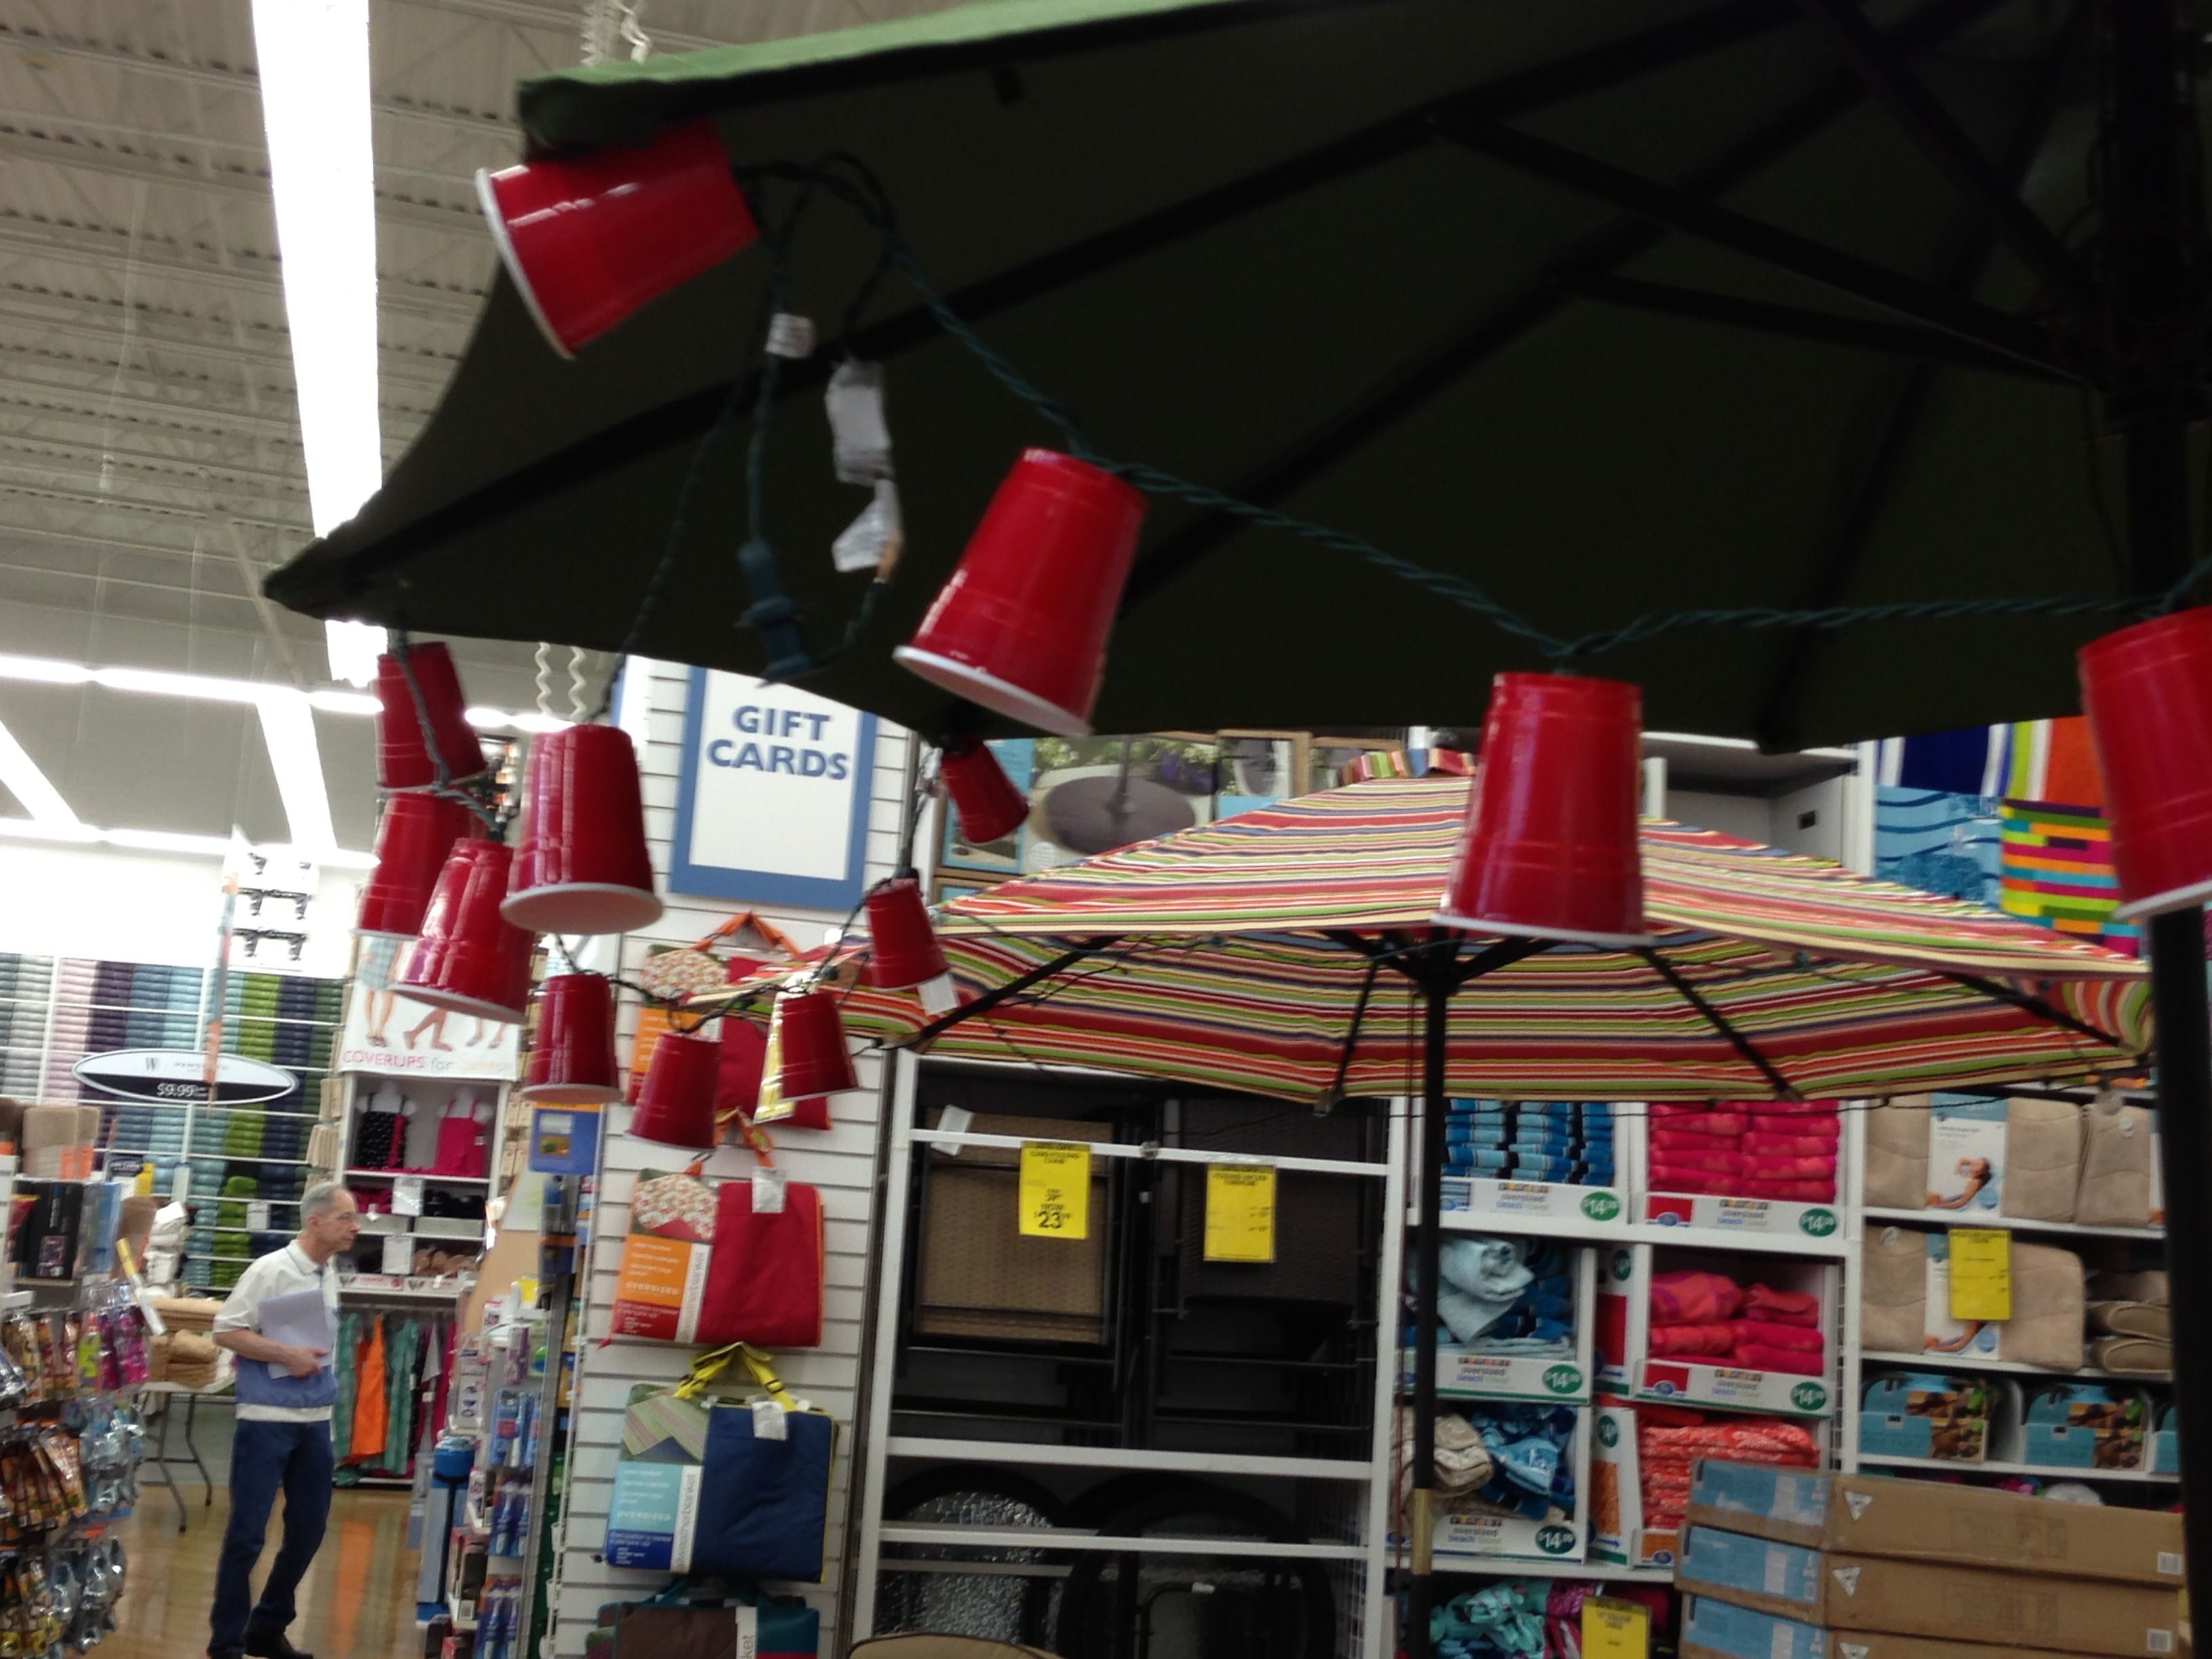 summer decorwhite christmas lights in red solo cups what a cute idea for outdoor party i saw this at one of my fav stores bed bath beyond